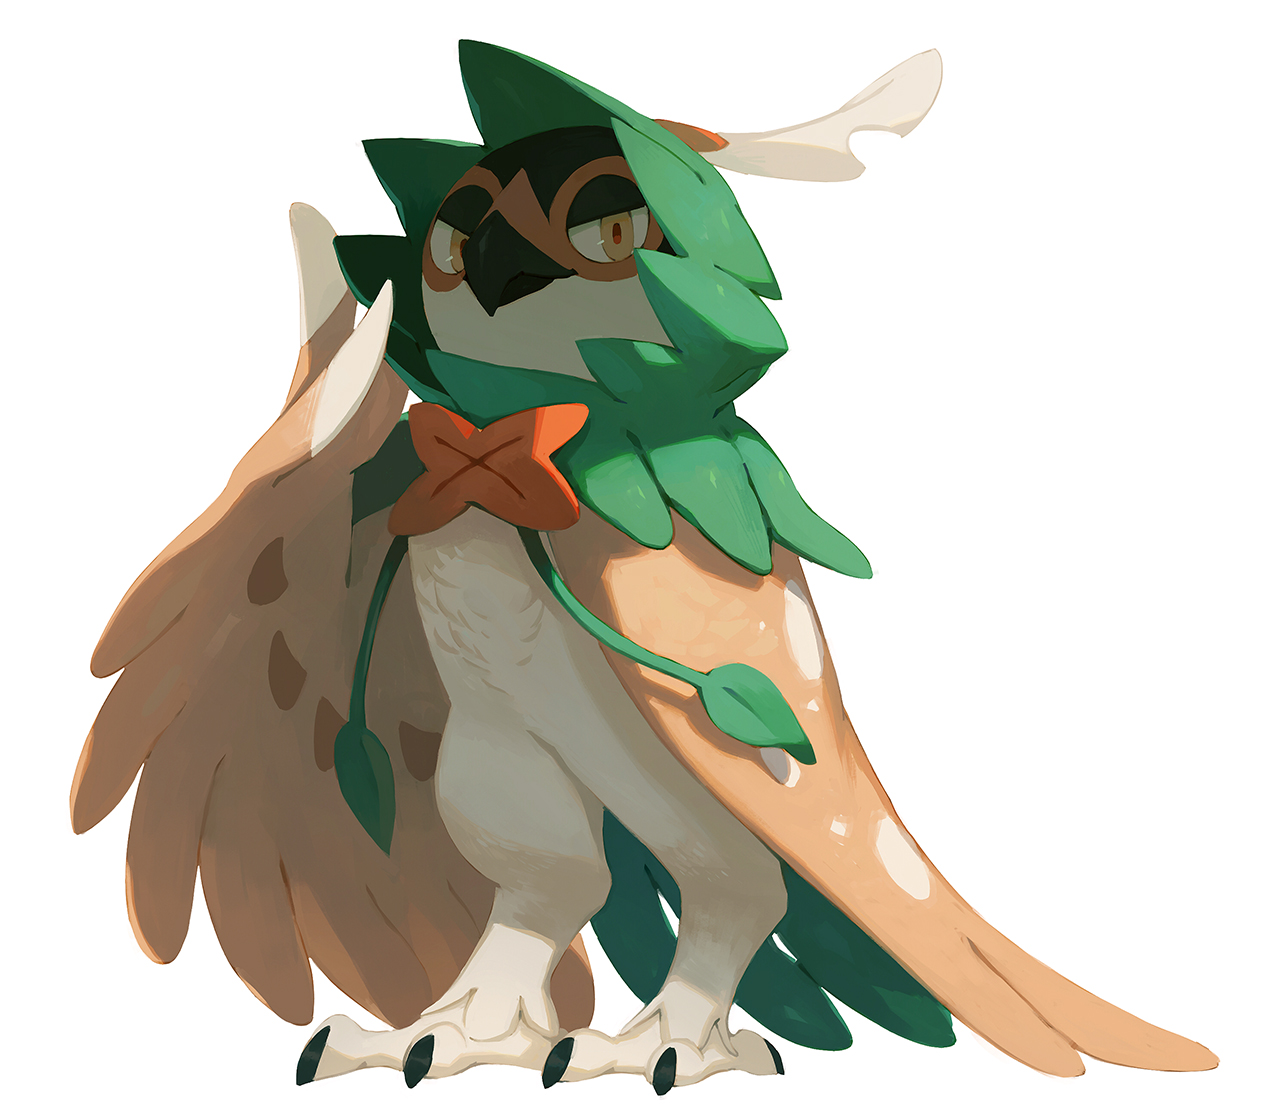 e926 2017 ambiguous_gender anthro avian beak biped black_beak bluekomadori brown_feathers decidueye digital_media_(artwork) digital_painting_(artwork) digitigrade feathered_wings feathers front_view full-length_portrait green_feathers looking_at_viewer mask_(marking) multicolored_feathers nintendo nude pokémon pokémon_(species) portrait pseudo_clothing shadow simple_background smile solo standing talons video_games white_background white_feathers white_skin winged_arms wings yellow_eyes